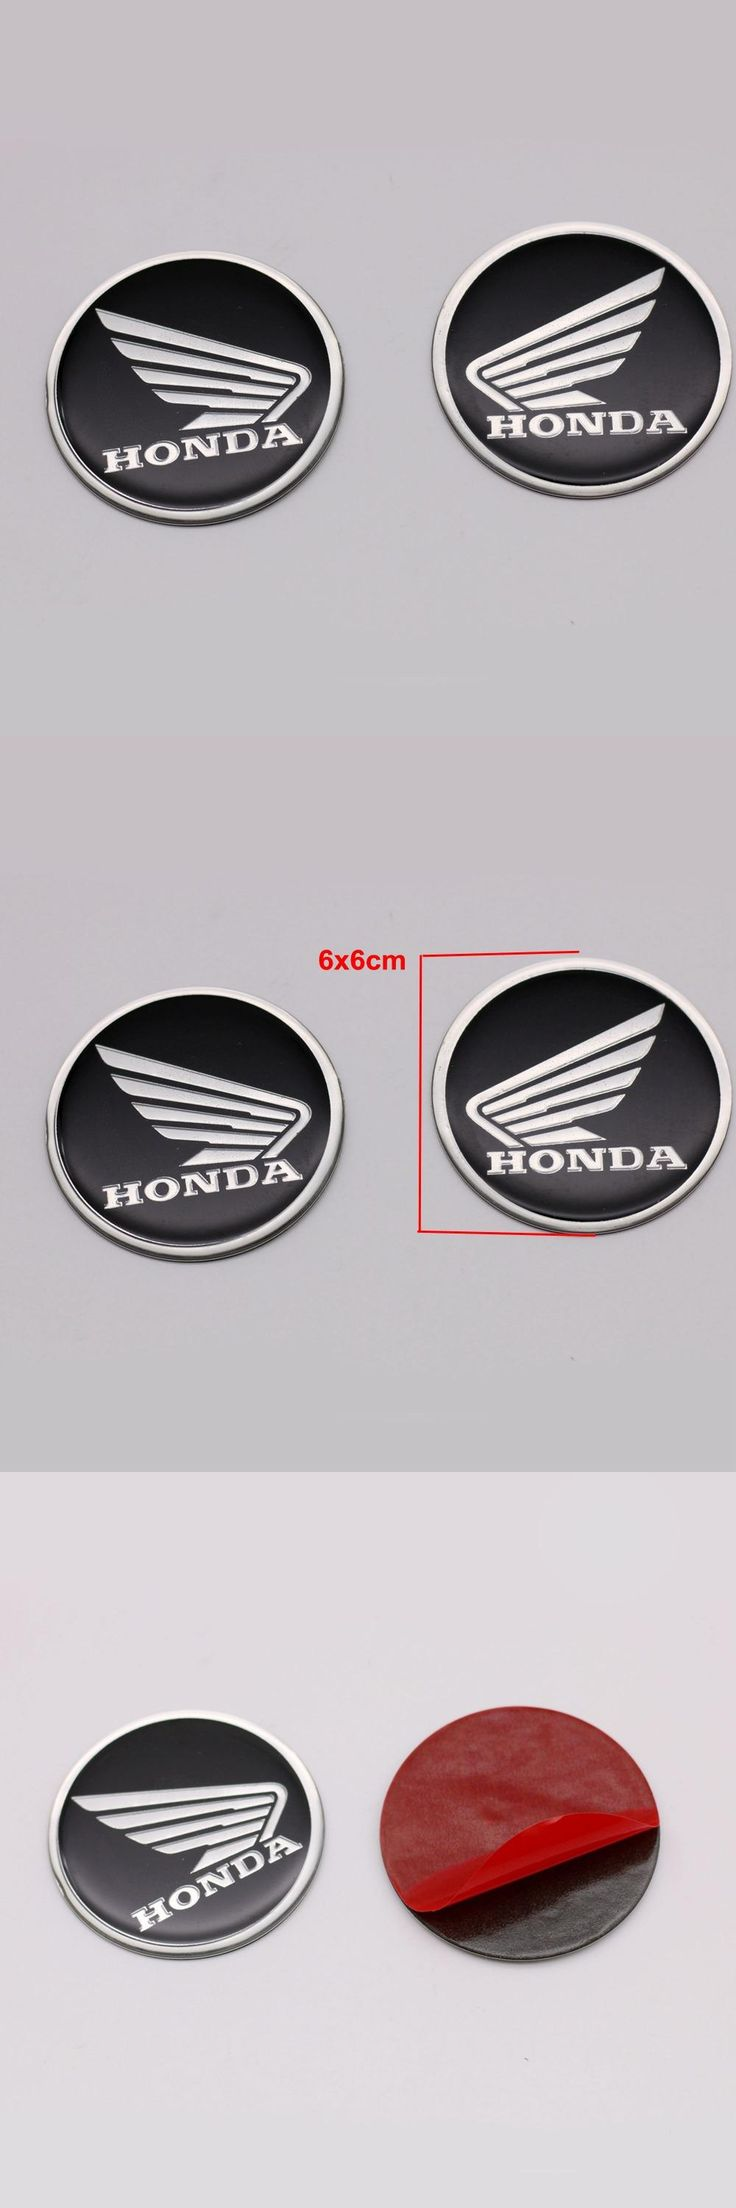 [Visit to Buy] 6x6cm Wing Style Stickers 3D Badge Emblem Fairing Decal Sticker Fits for Honda And Most Motorcycle Car Auto Body Tank Cover #Advertisement